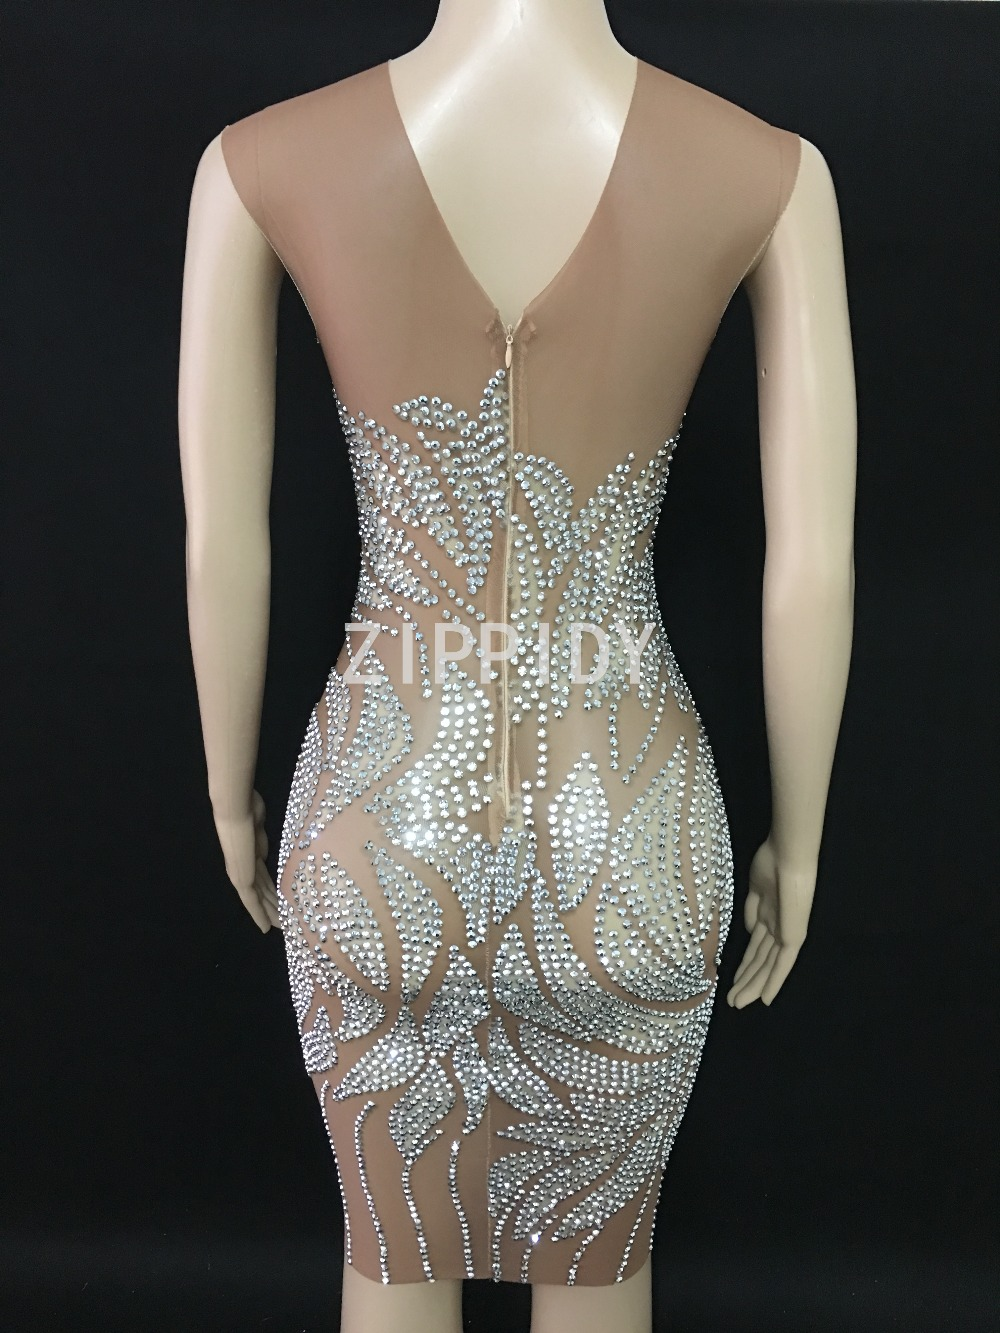 Sparkly Silver Stones Sleeveless Mesh Dress Women Diamonds Outfit Dress Nightclub Dancer Wear Women 39 s Birthday Party Sexy Dress in Dresses from Women 39 s Clothing